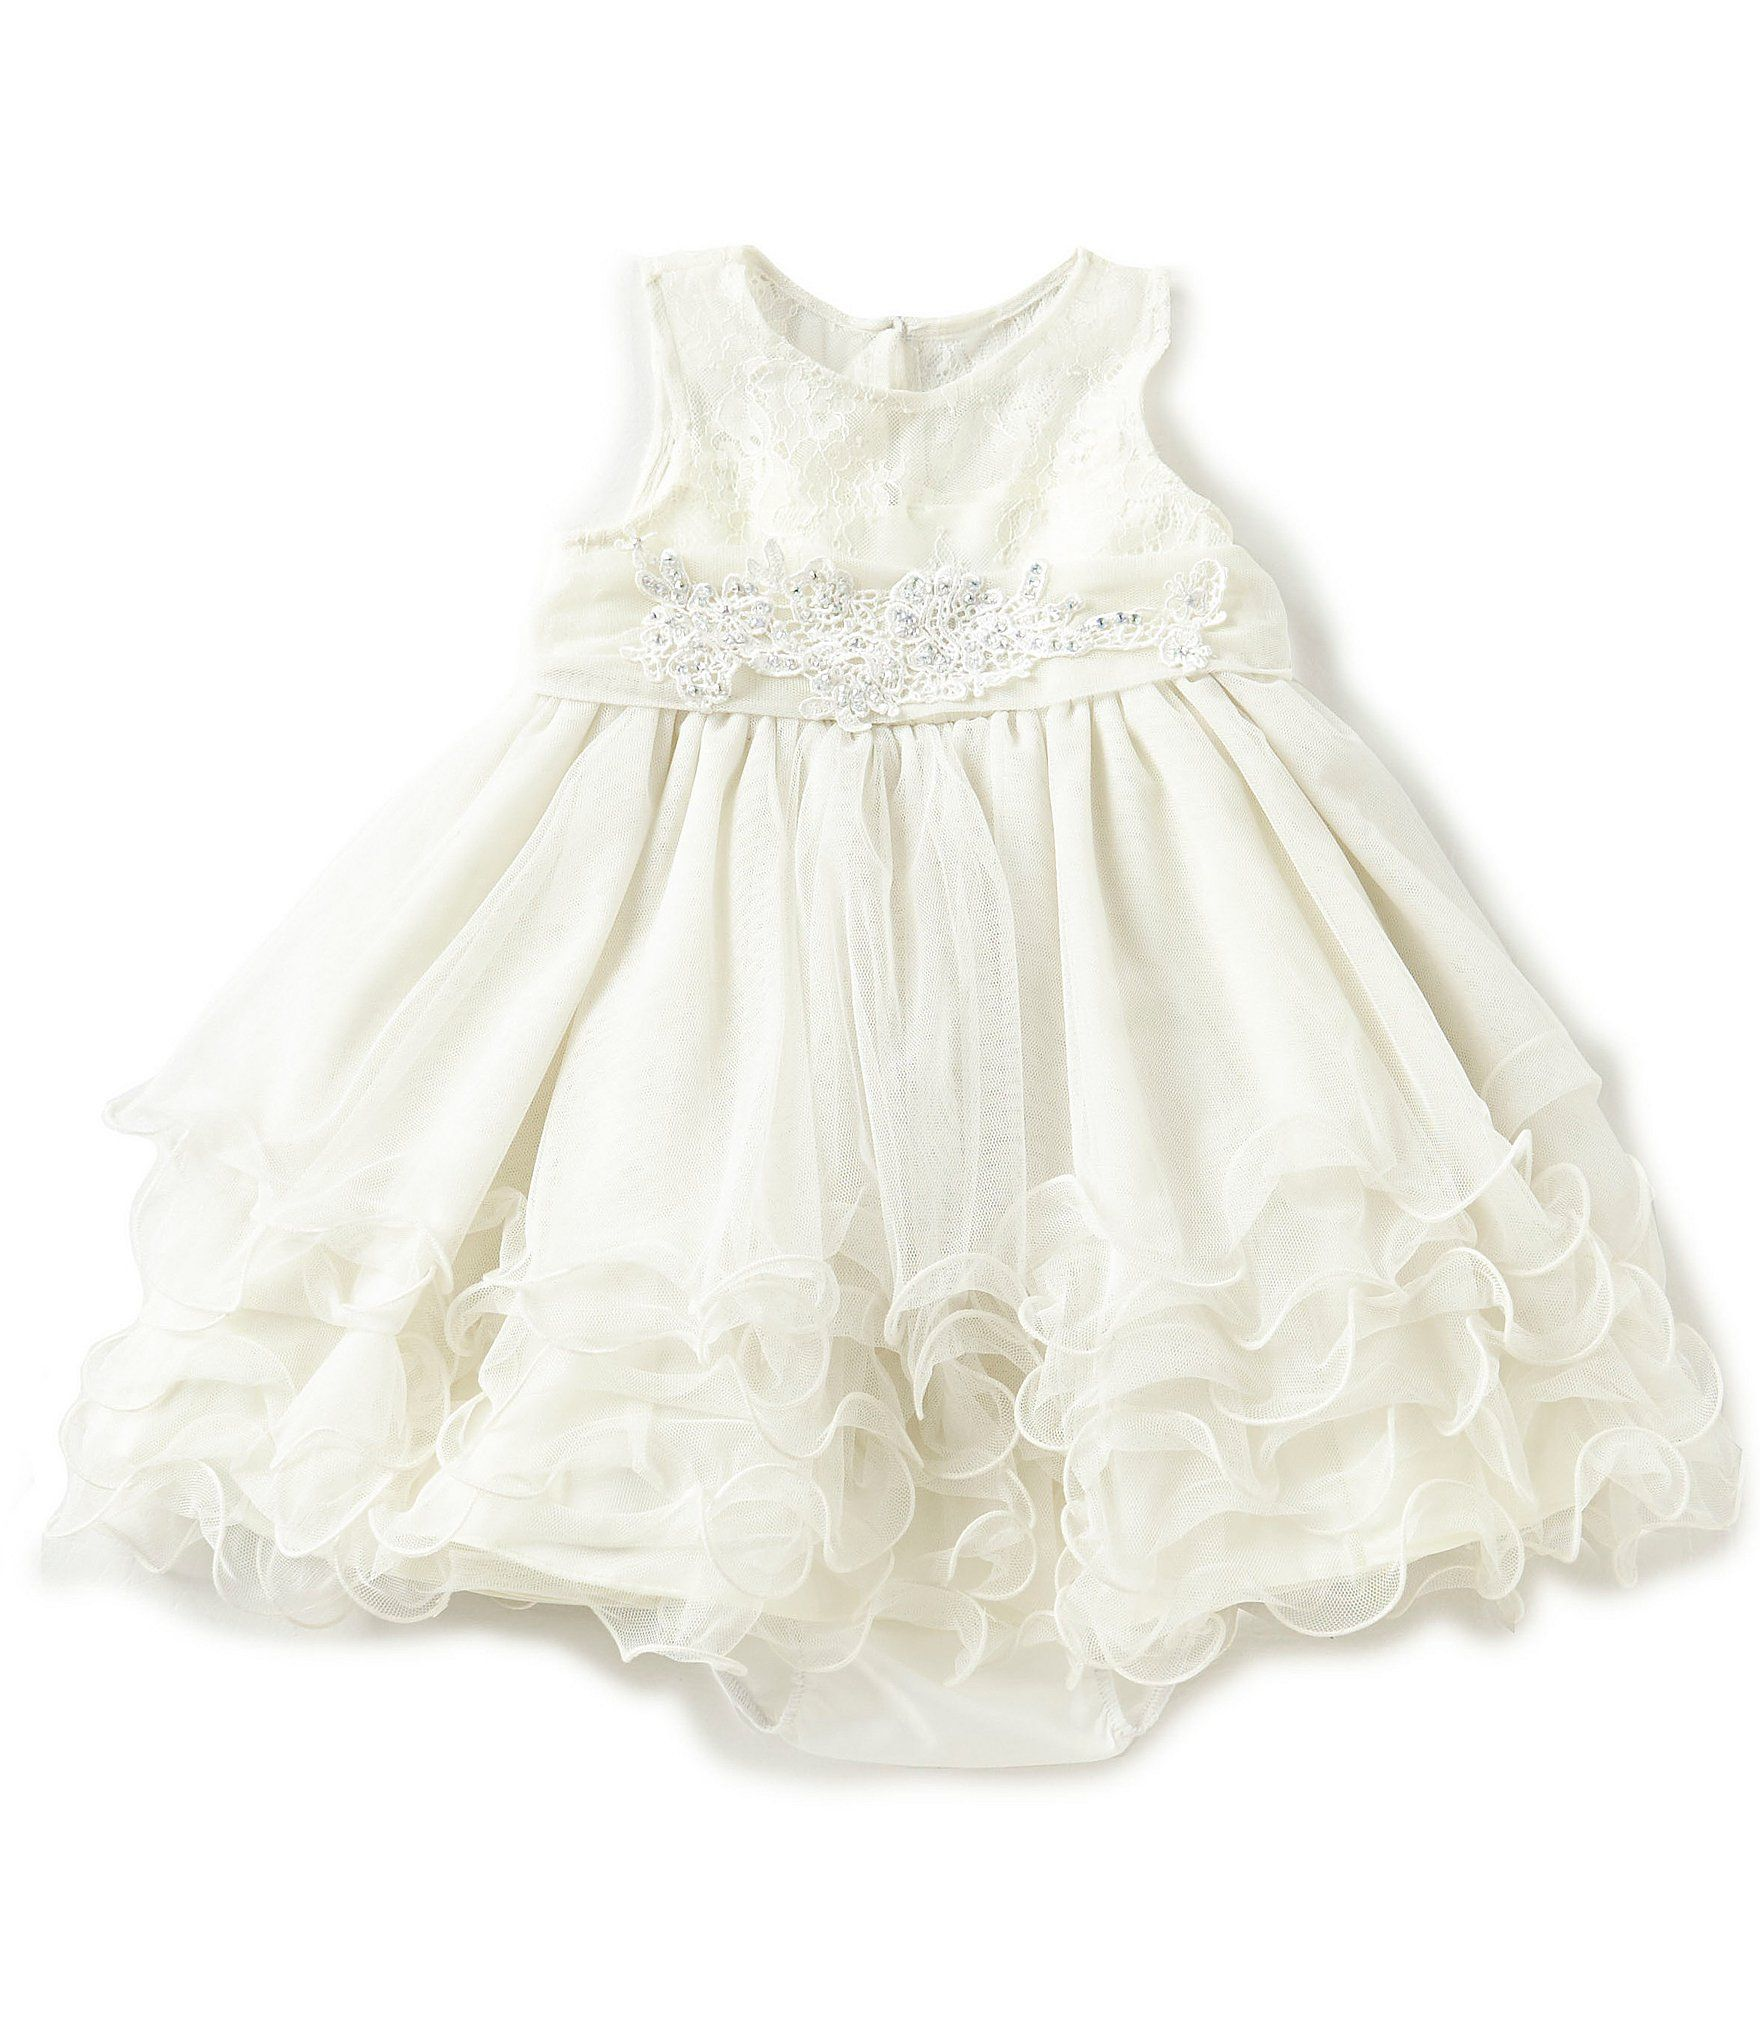 cb92b5bb768e5 Shop for Chantilly Place Baby Girls 12-24 Months Embroidered Fit-And-Flare  Dress at Dillards.com. Visit Dillards.com to find clothing, accessories,  shoes, ...